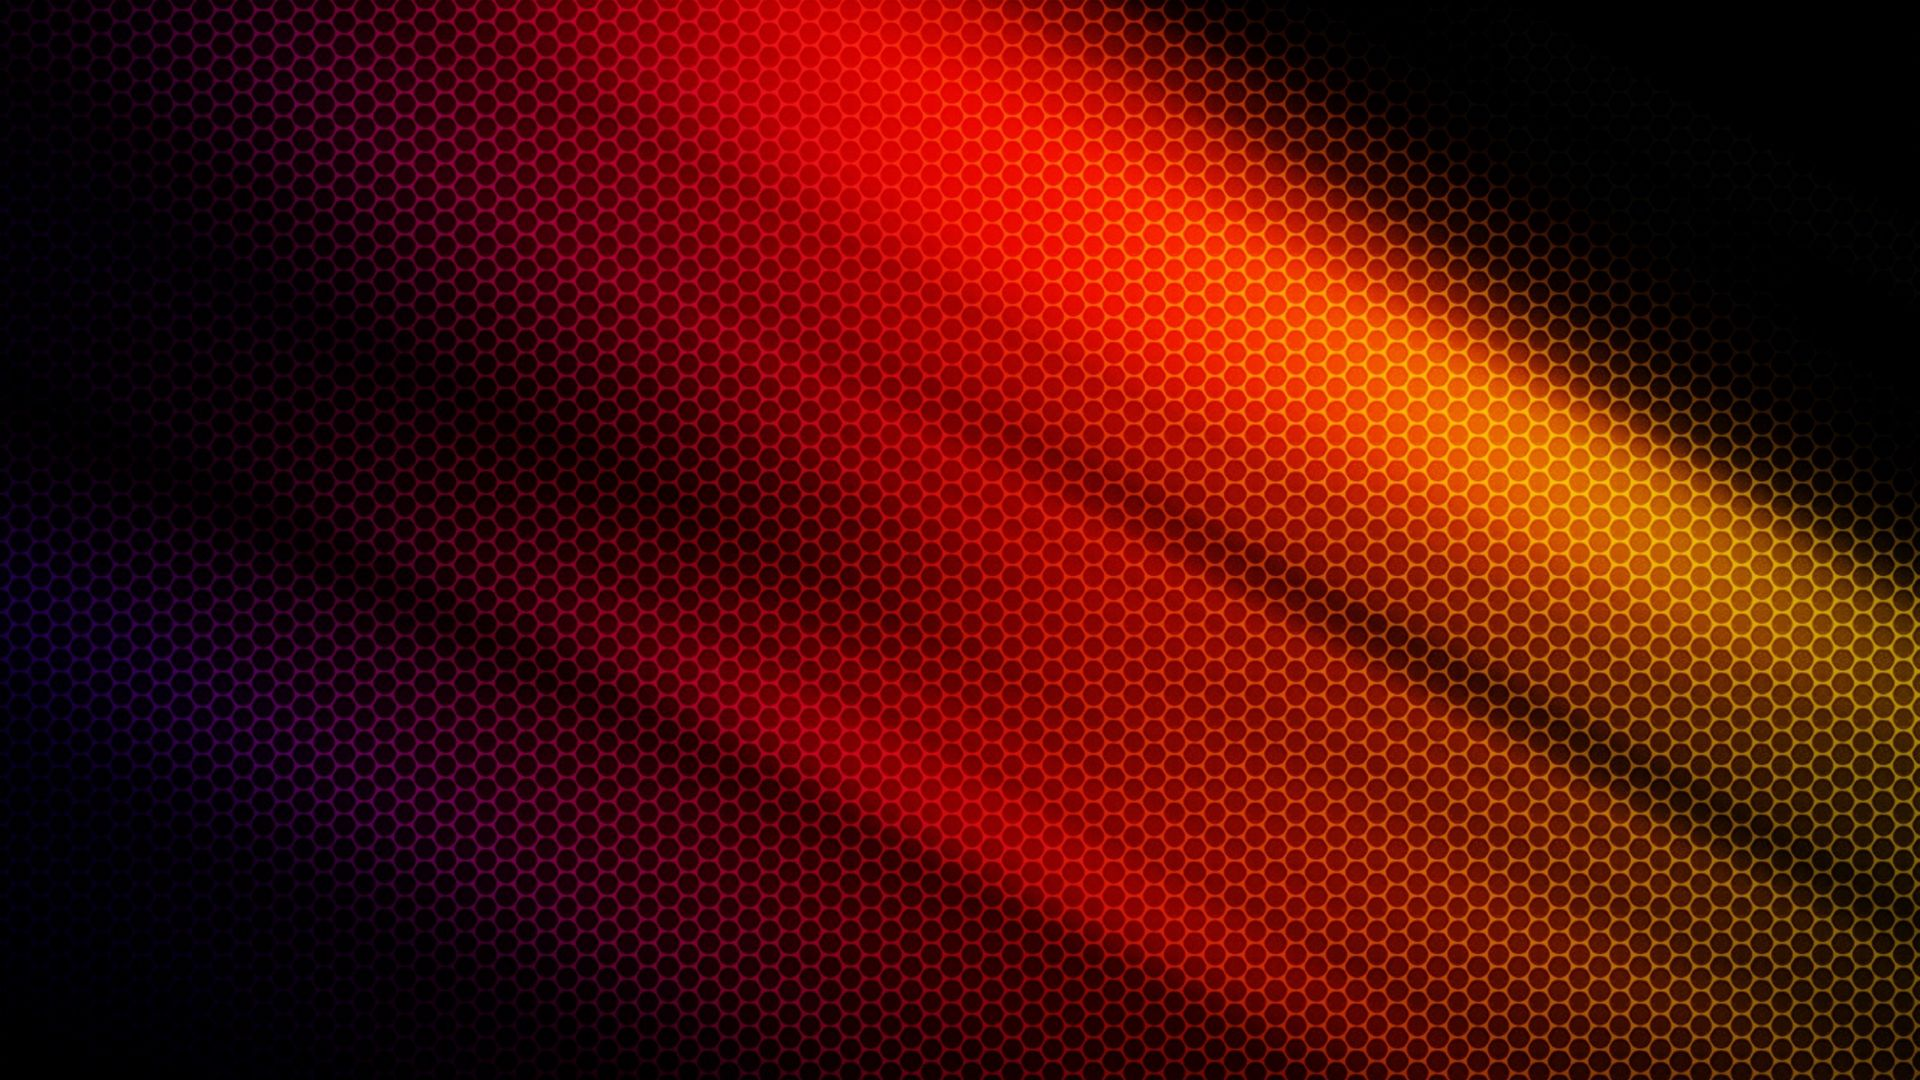 1920x1080 Wallpaper net, color, background, dark